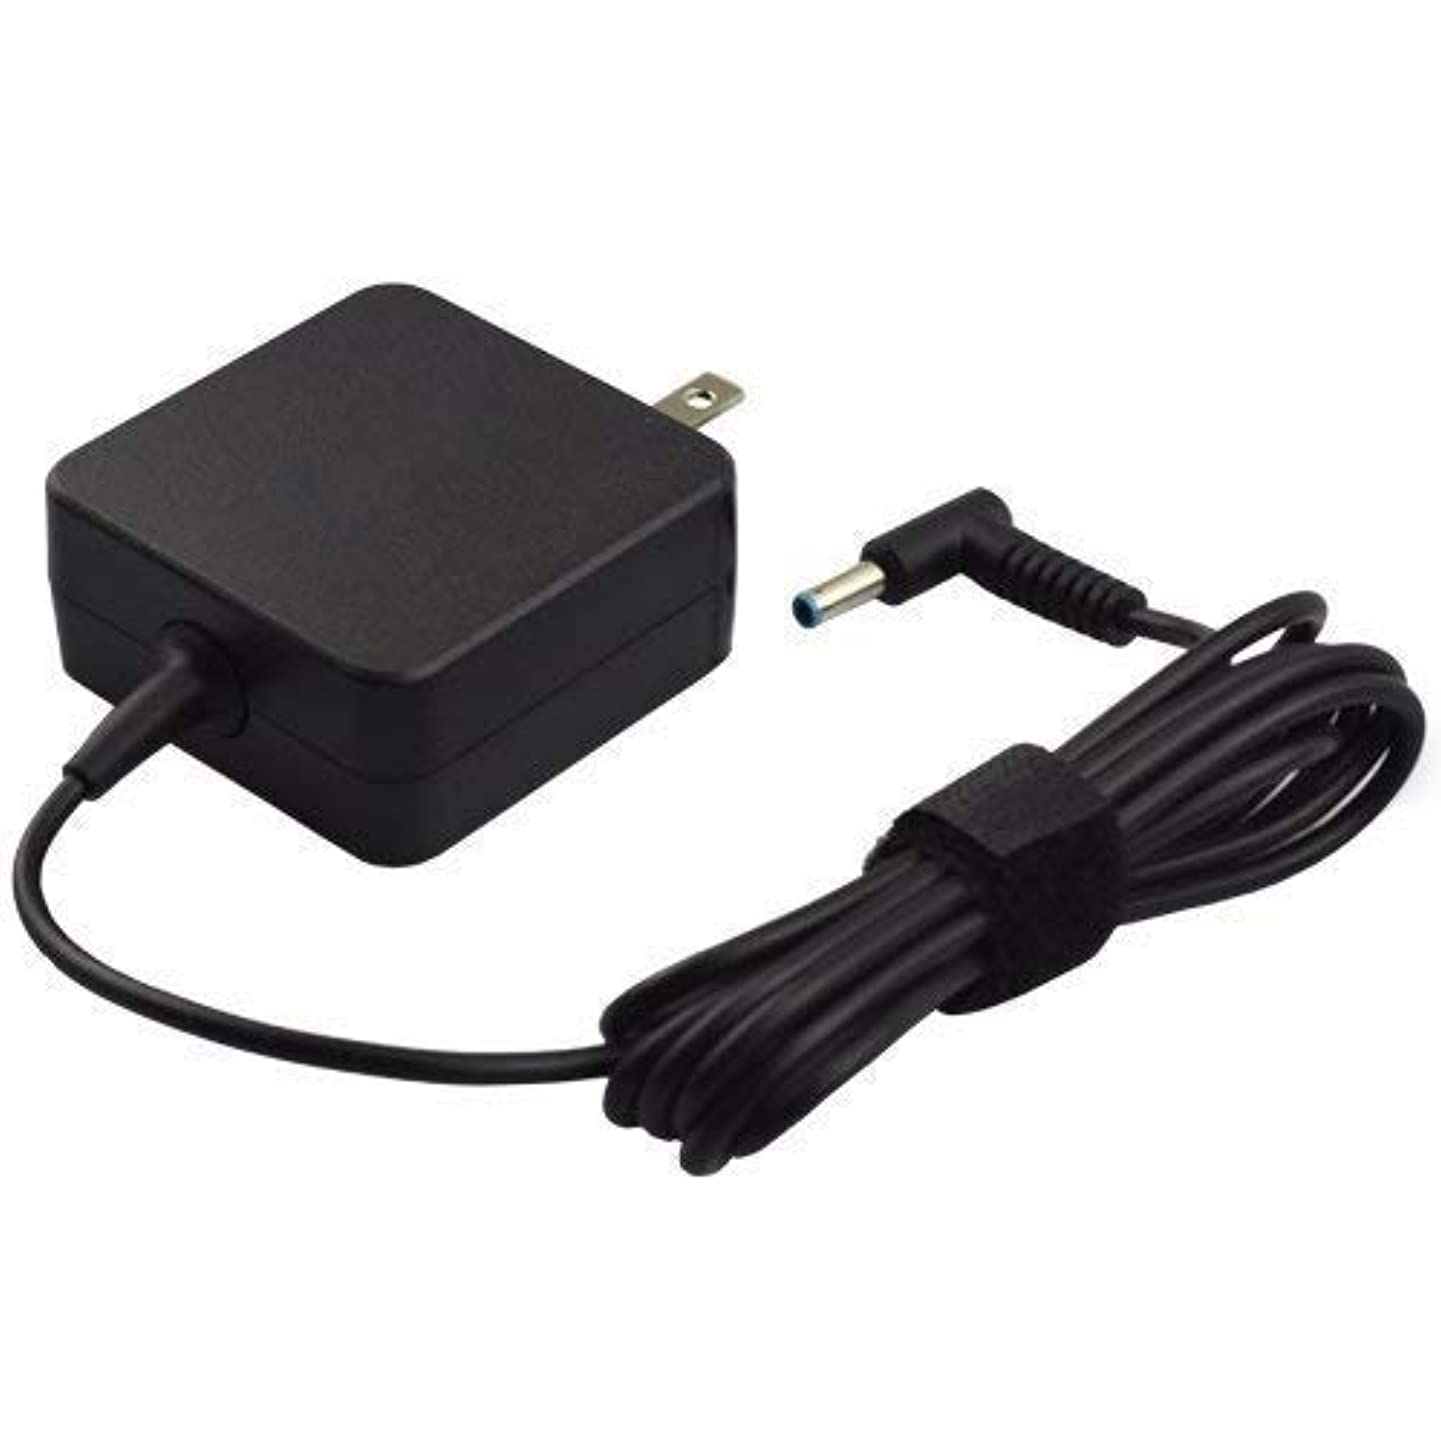 AC Charger Fit for HP 15-ay018nr 15.6-Inch Laptop - Power Supply Adapter Cord